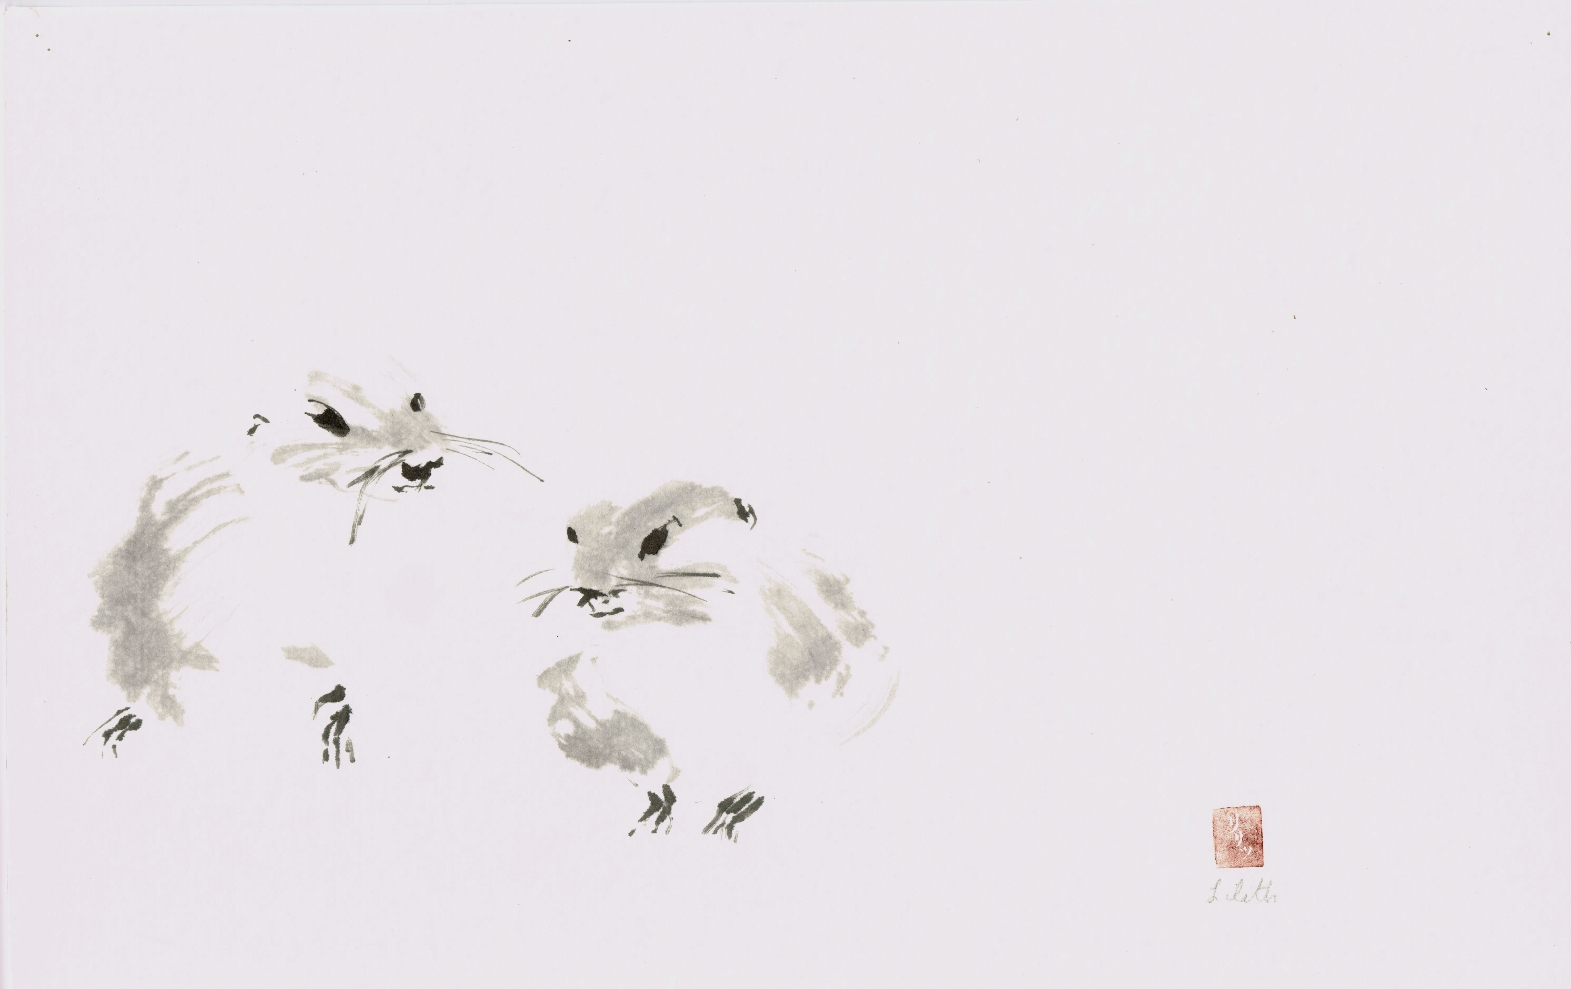 "The Empty Space ""Tao Te Ching"" verse 4 For Artists sumi-e painting of two groundhogs."